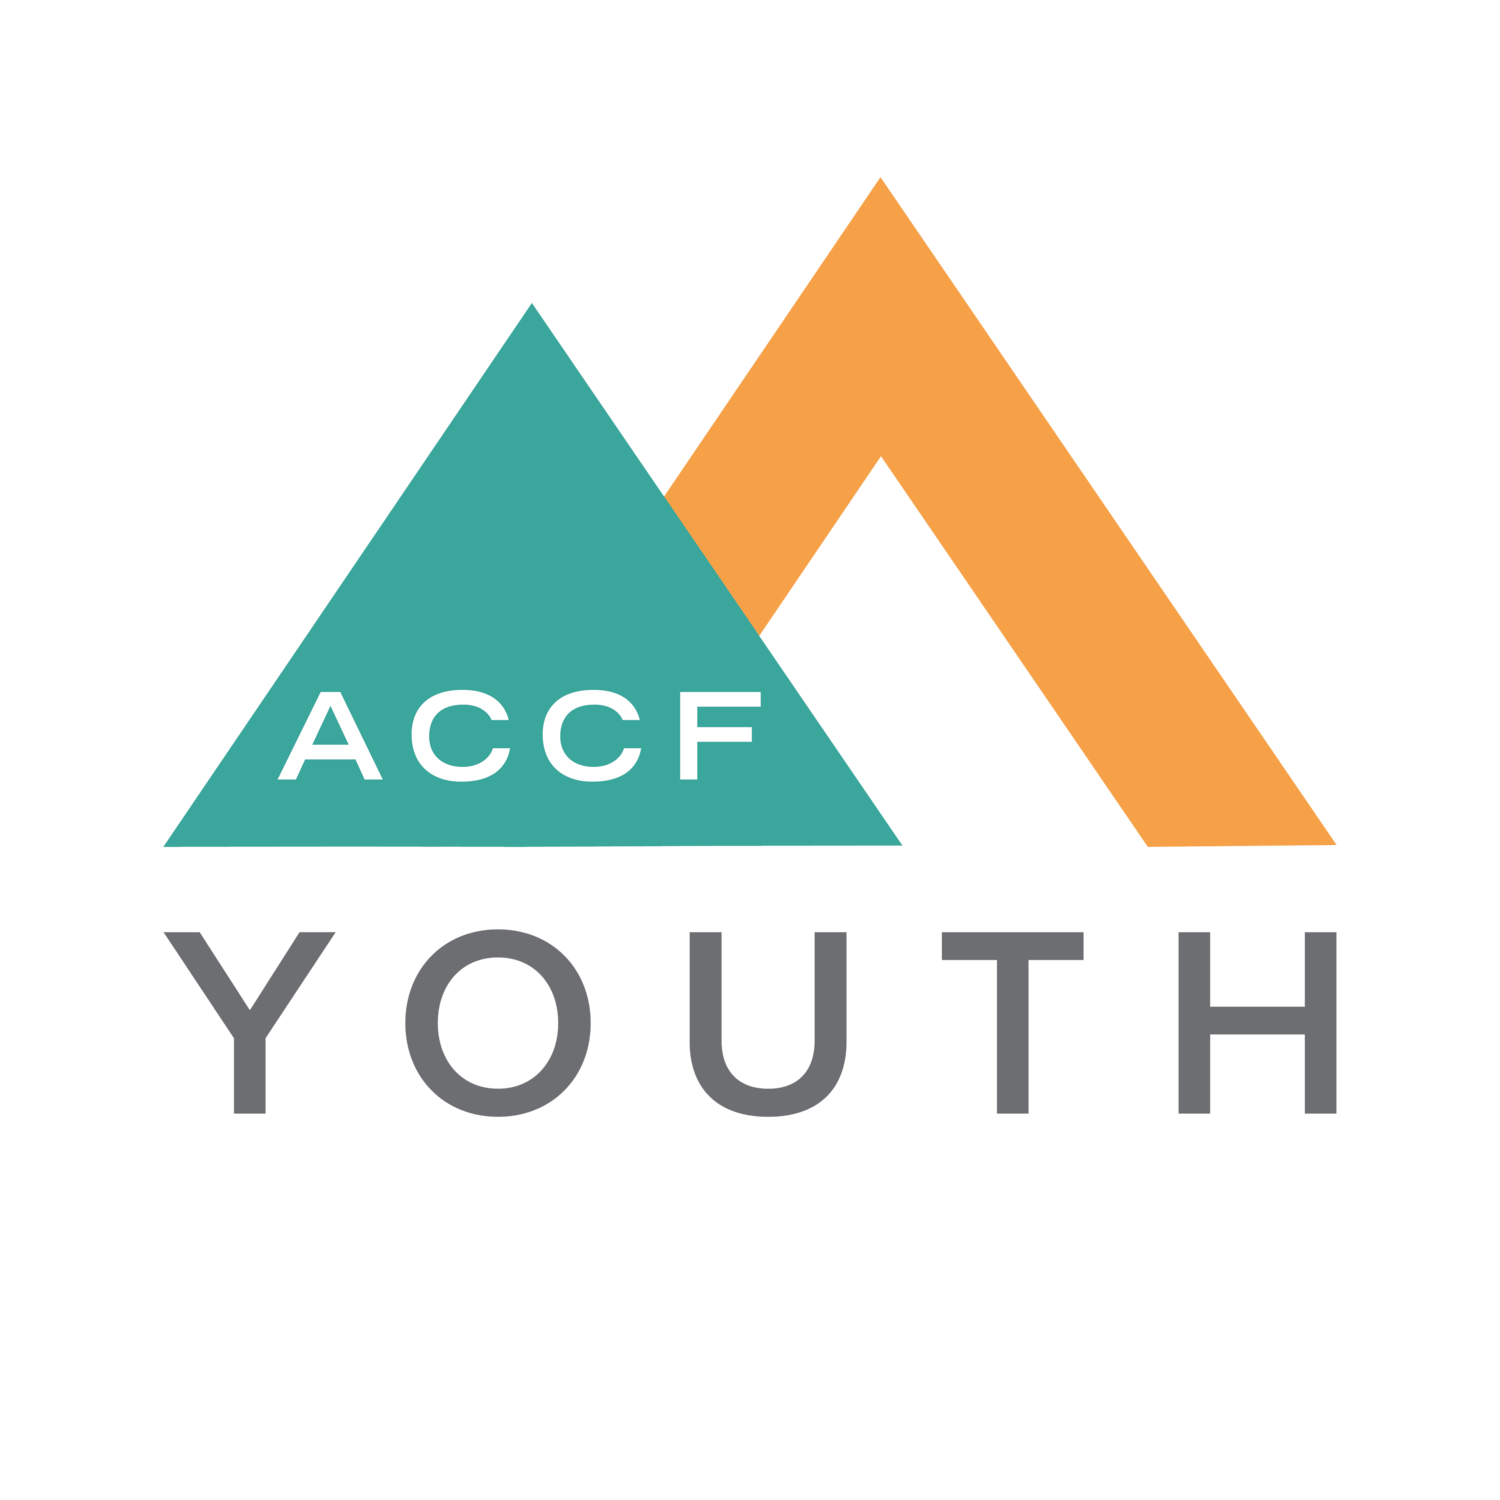 ACCF YOUTH